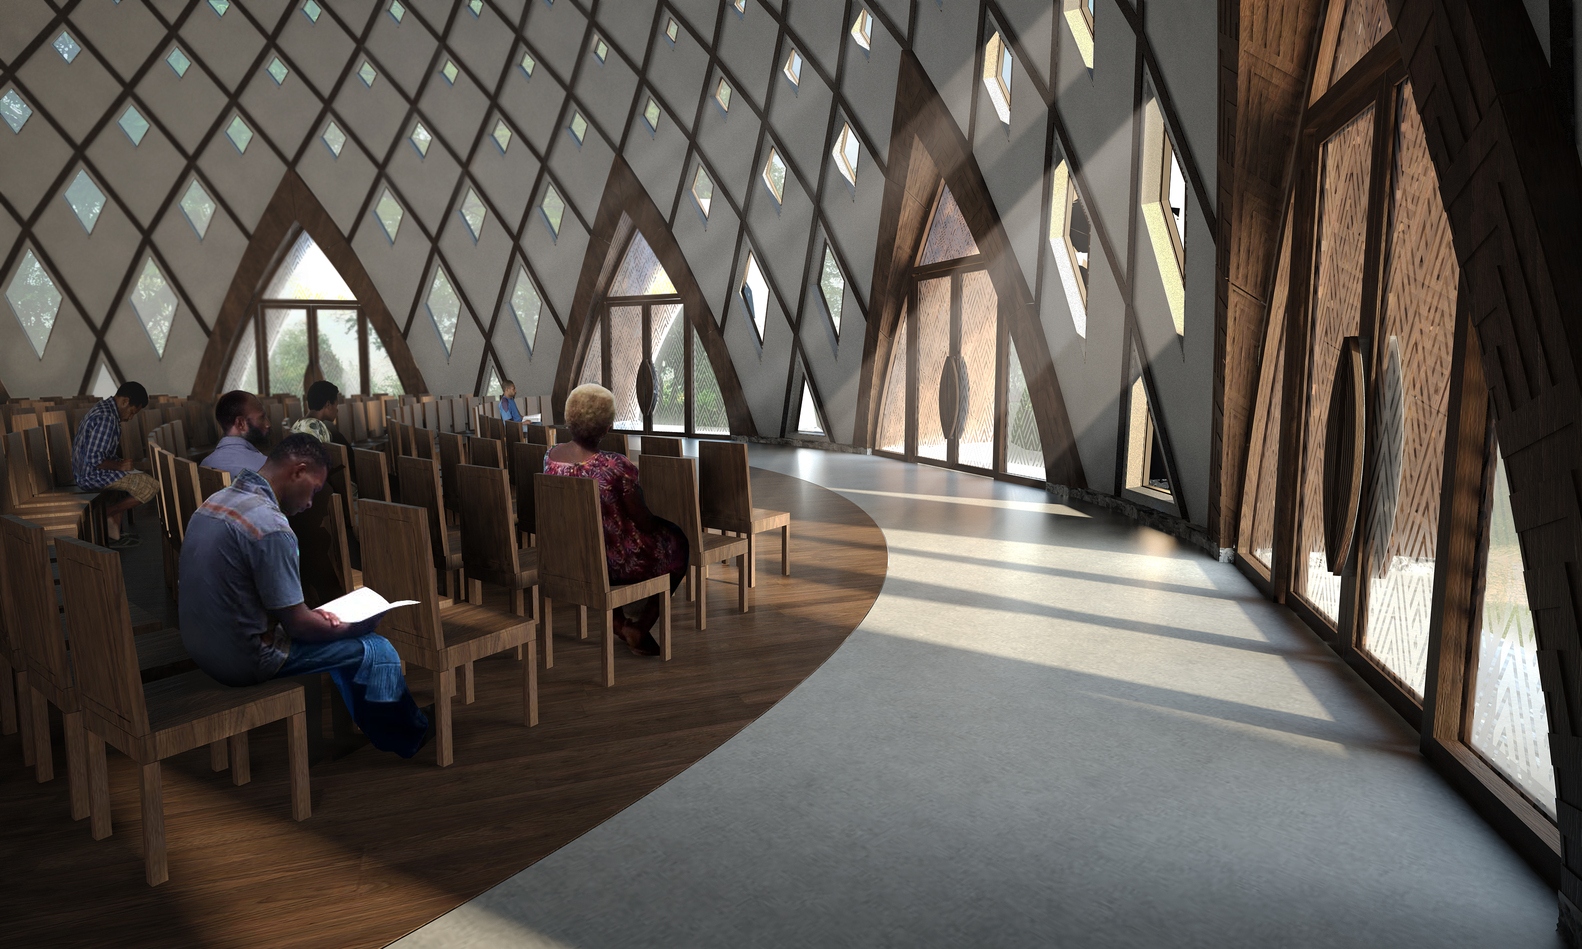 Gallery of Images Released for Bah House of Worship in Papua 1582x949